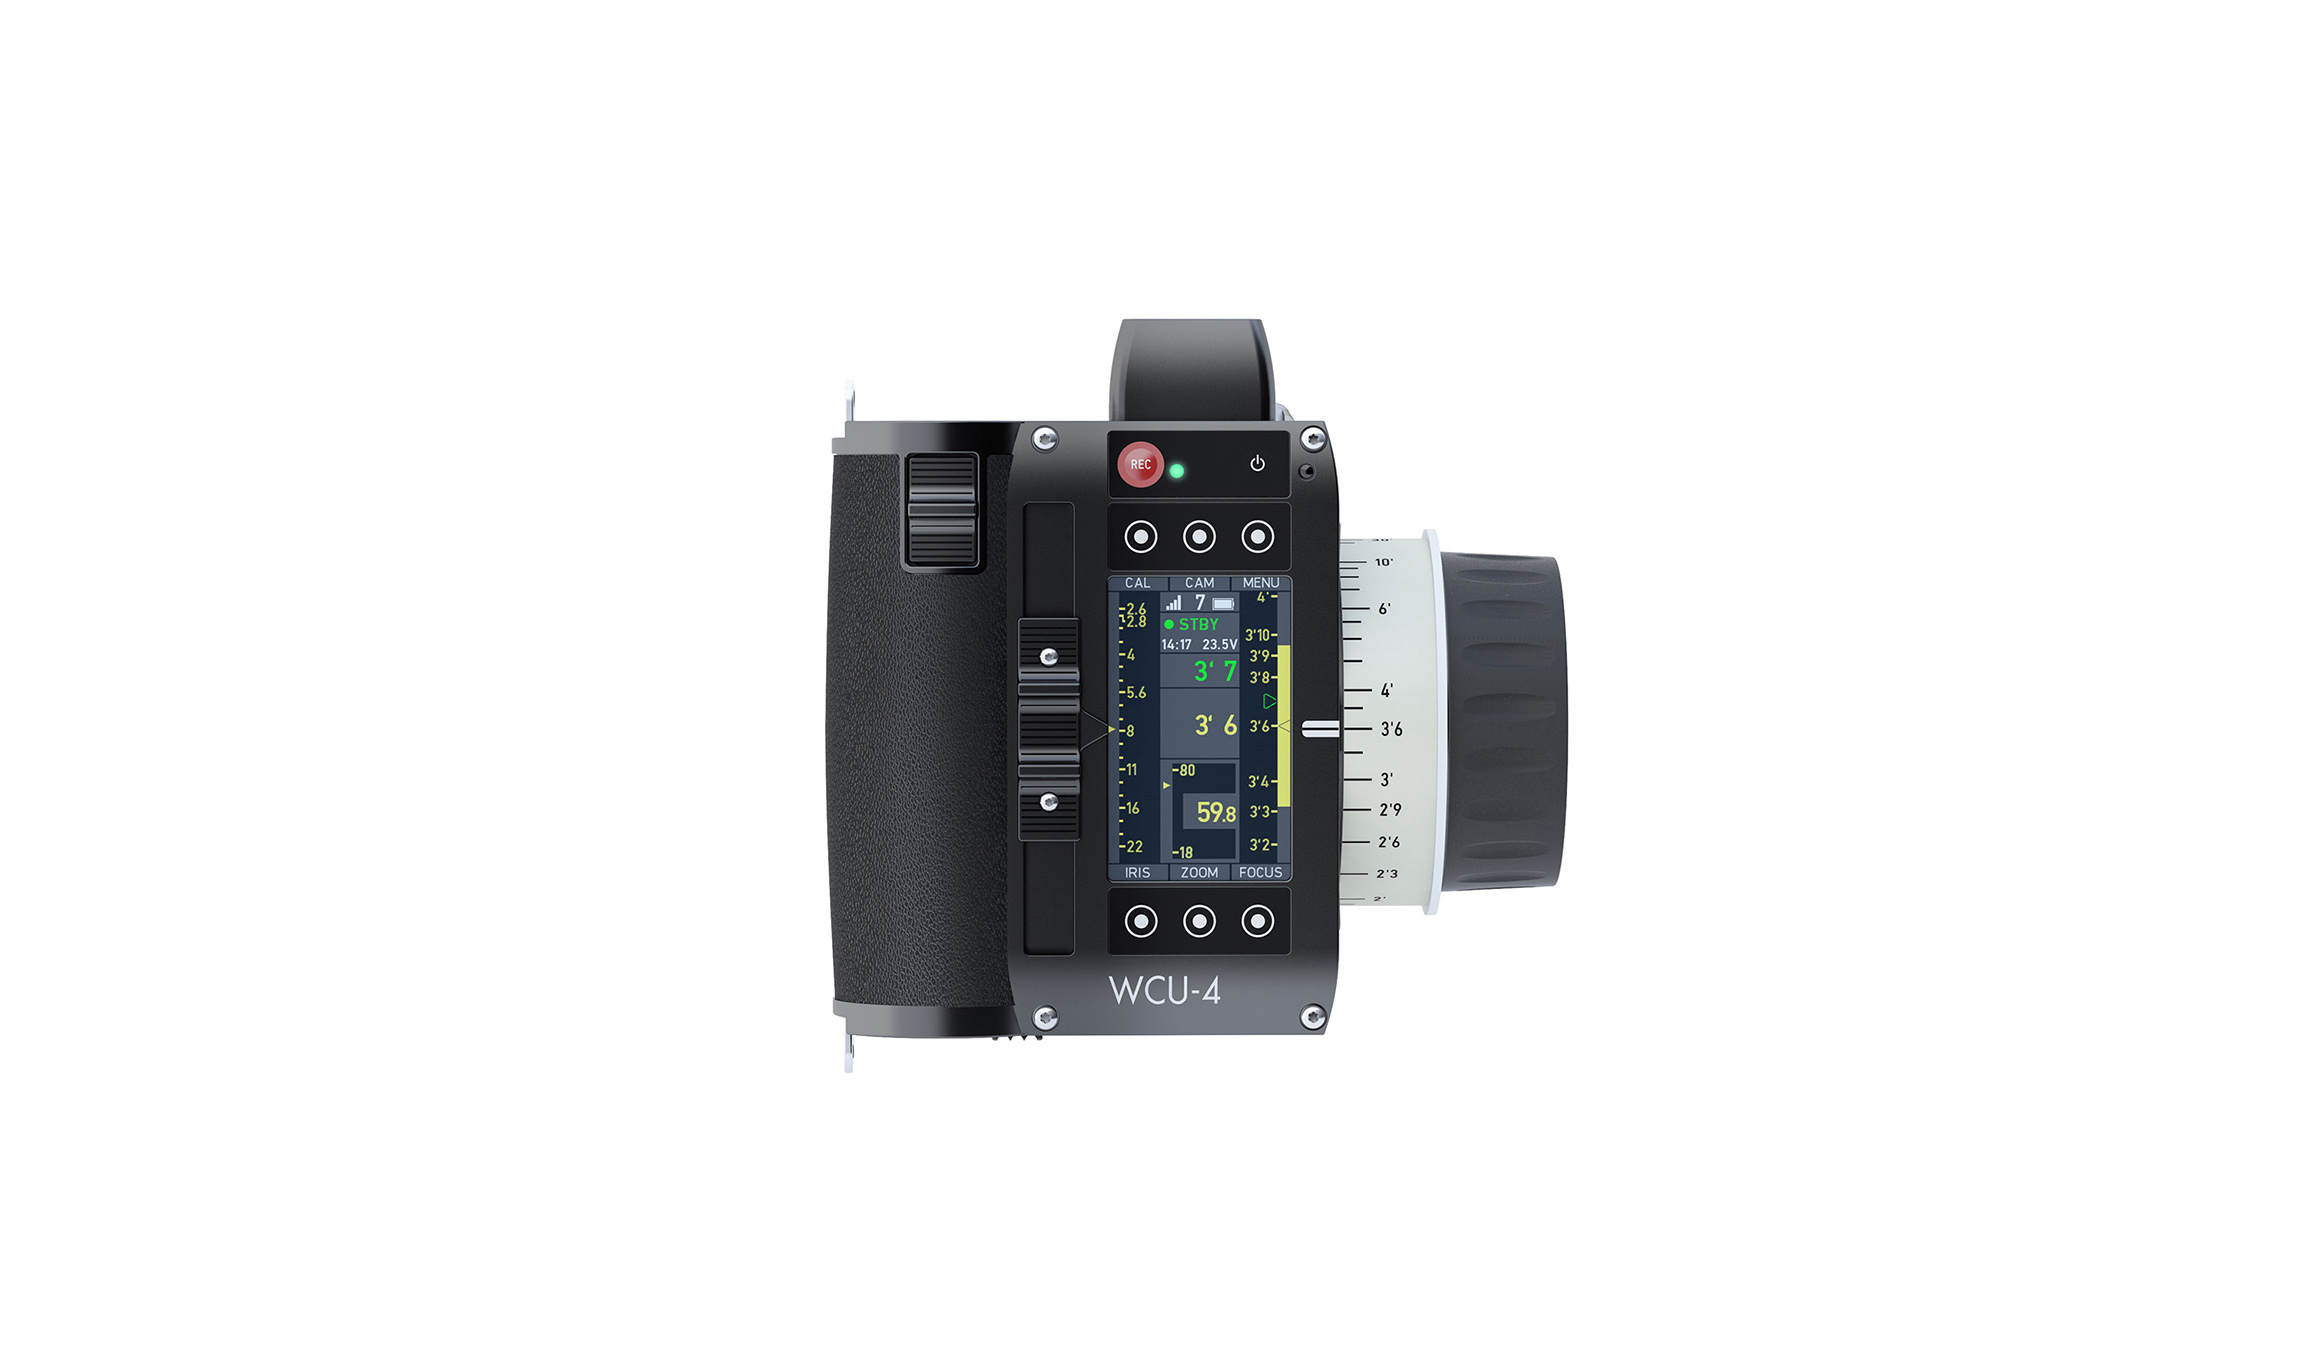 ARRI WIRELESS COMPACT UNIT WCU-4